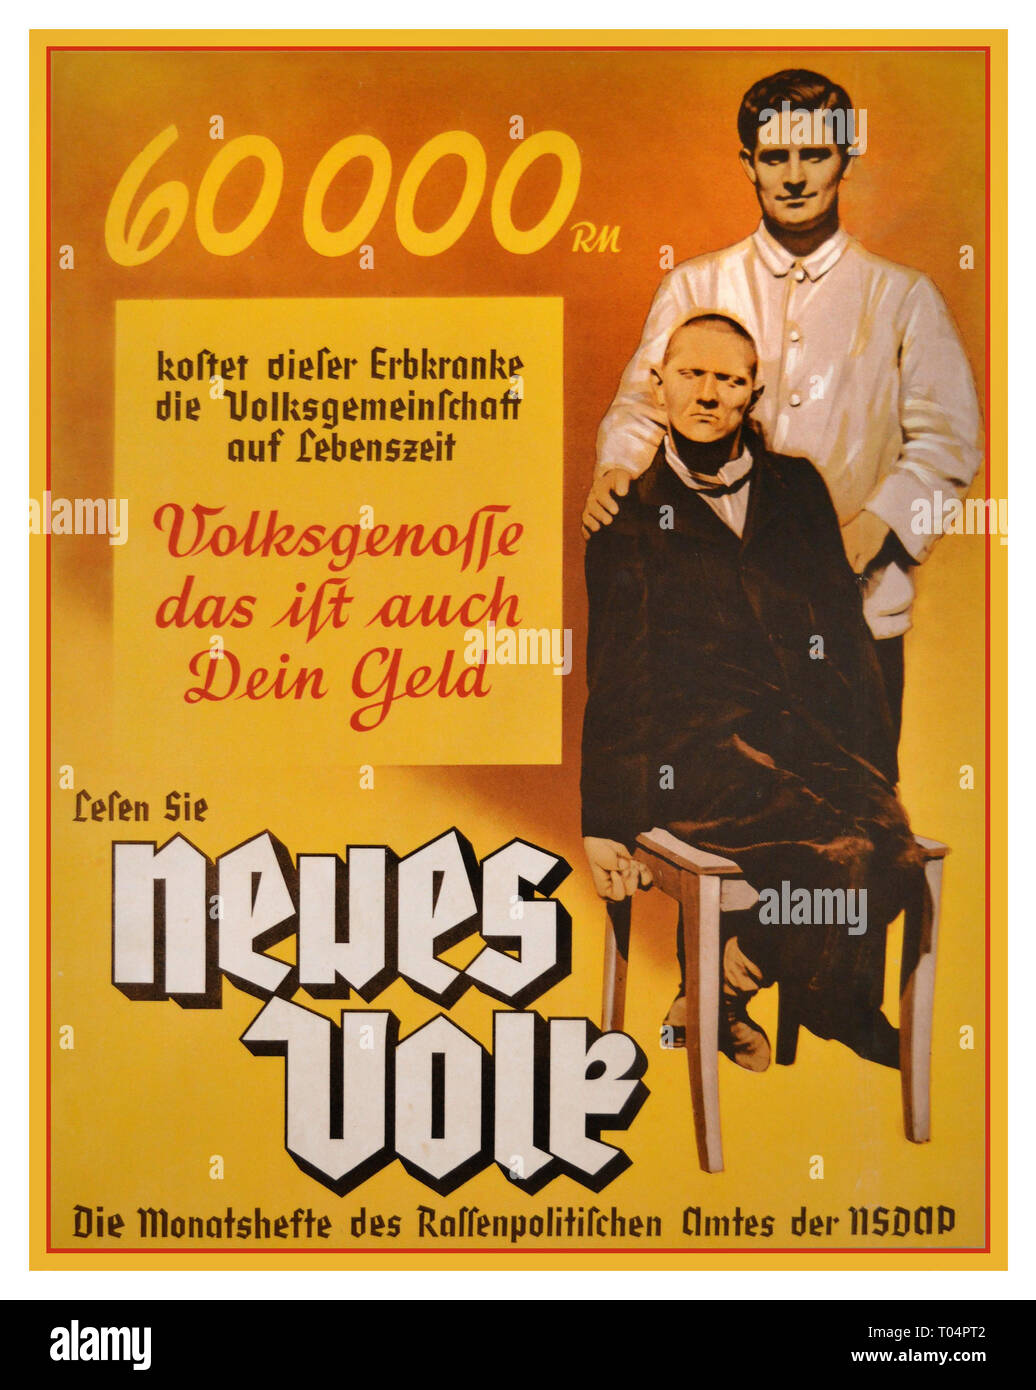 1938 Nazi Propaganda poster for the monthly magazine 'Neues Volk' (The New People) published by Goebbels Nazi Party's 'Racial Police Office,' The 'Racial Policy Office' propagated Nazi 'racial doctrine' in a variety of ways. In posters and publications, it contrasted the ideal of the healthy, capable, and 'racially pure' German with the grossly distorted and racist image of the unproductive sick and disabled who burdened the 'productive Volk Community' as 'ballast existences.' The poster text reads, 'This hereditary defective costs the Volk Community 60,000 RM (Reichsmark) over his lifetime - Stock Image